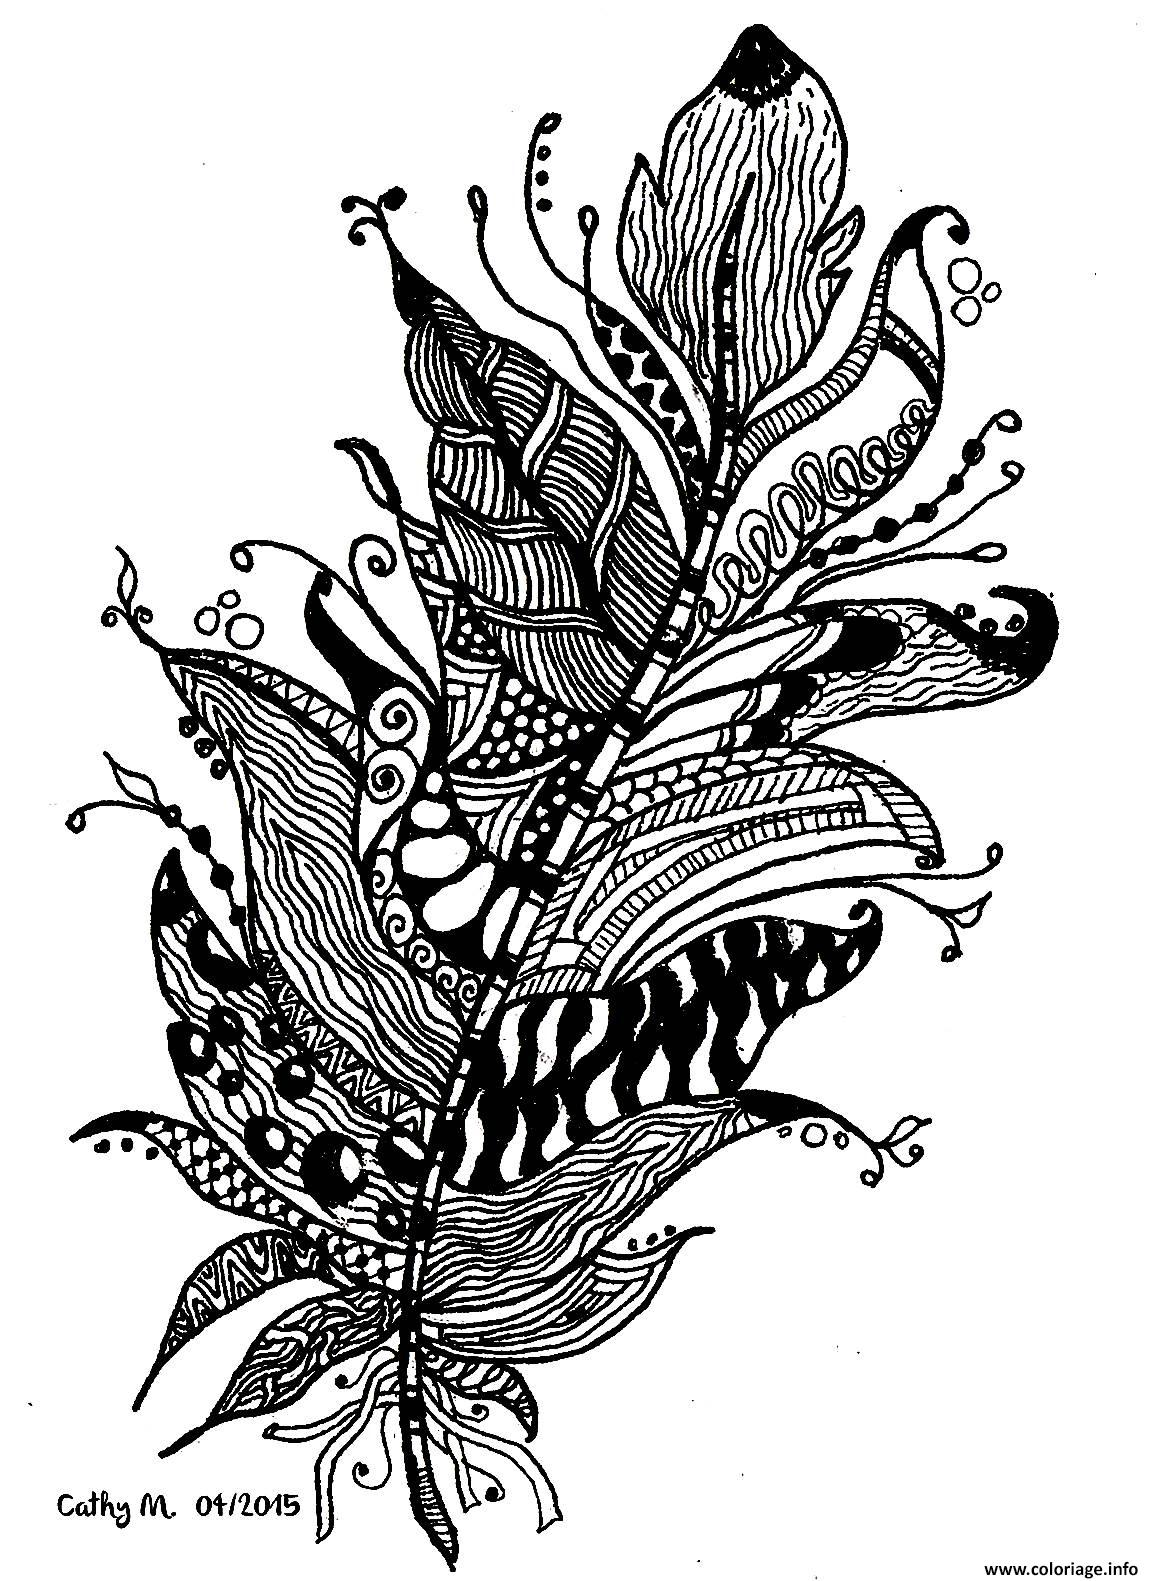 Coloriage Adulte Zentangle By Cathym 11 Dessin à Imprimer